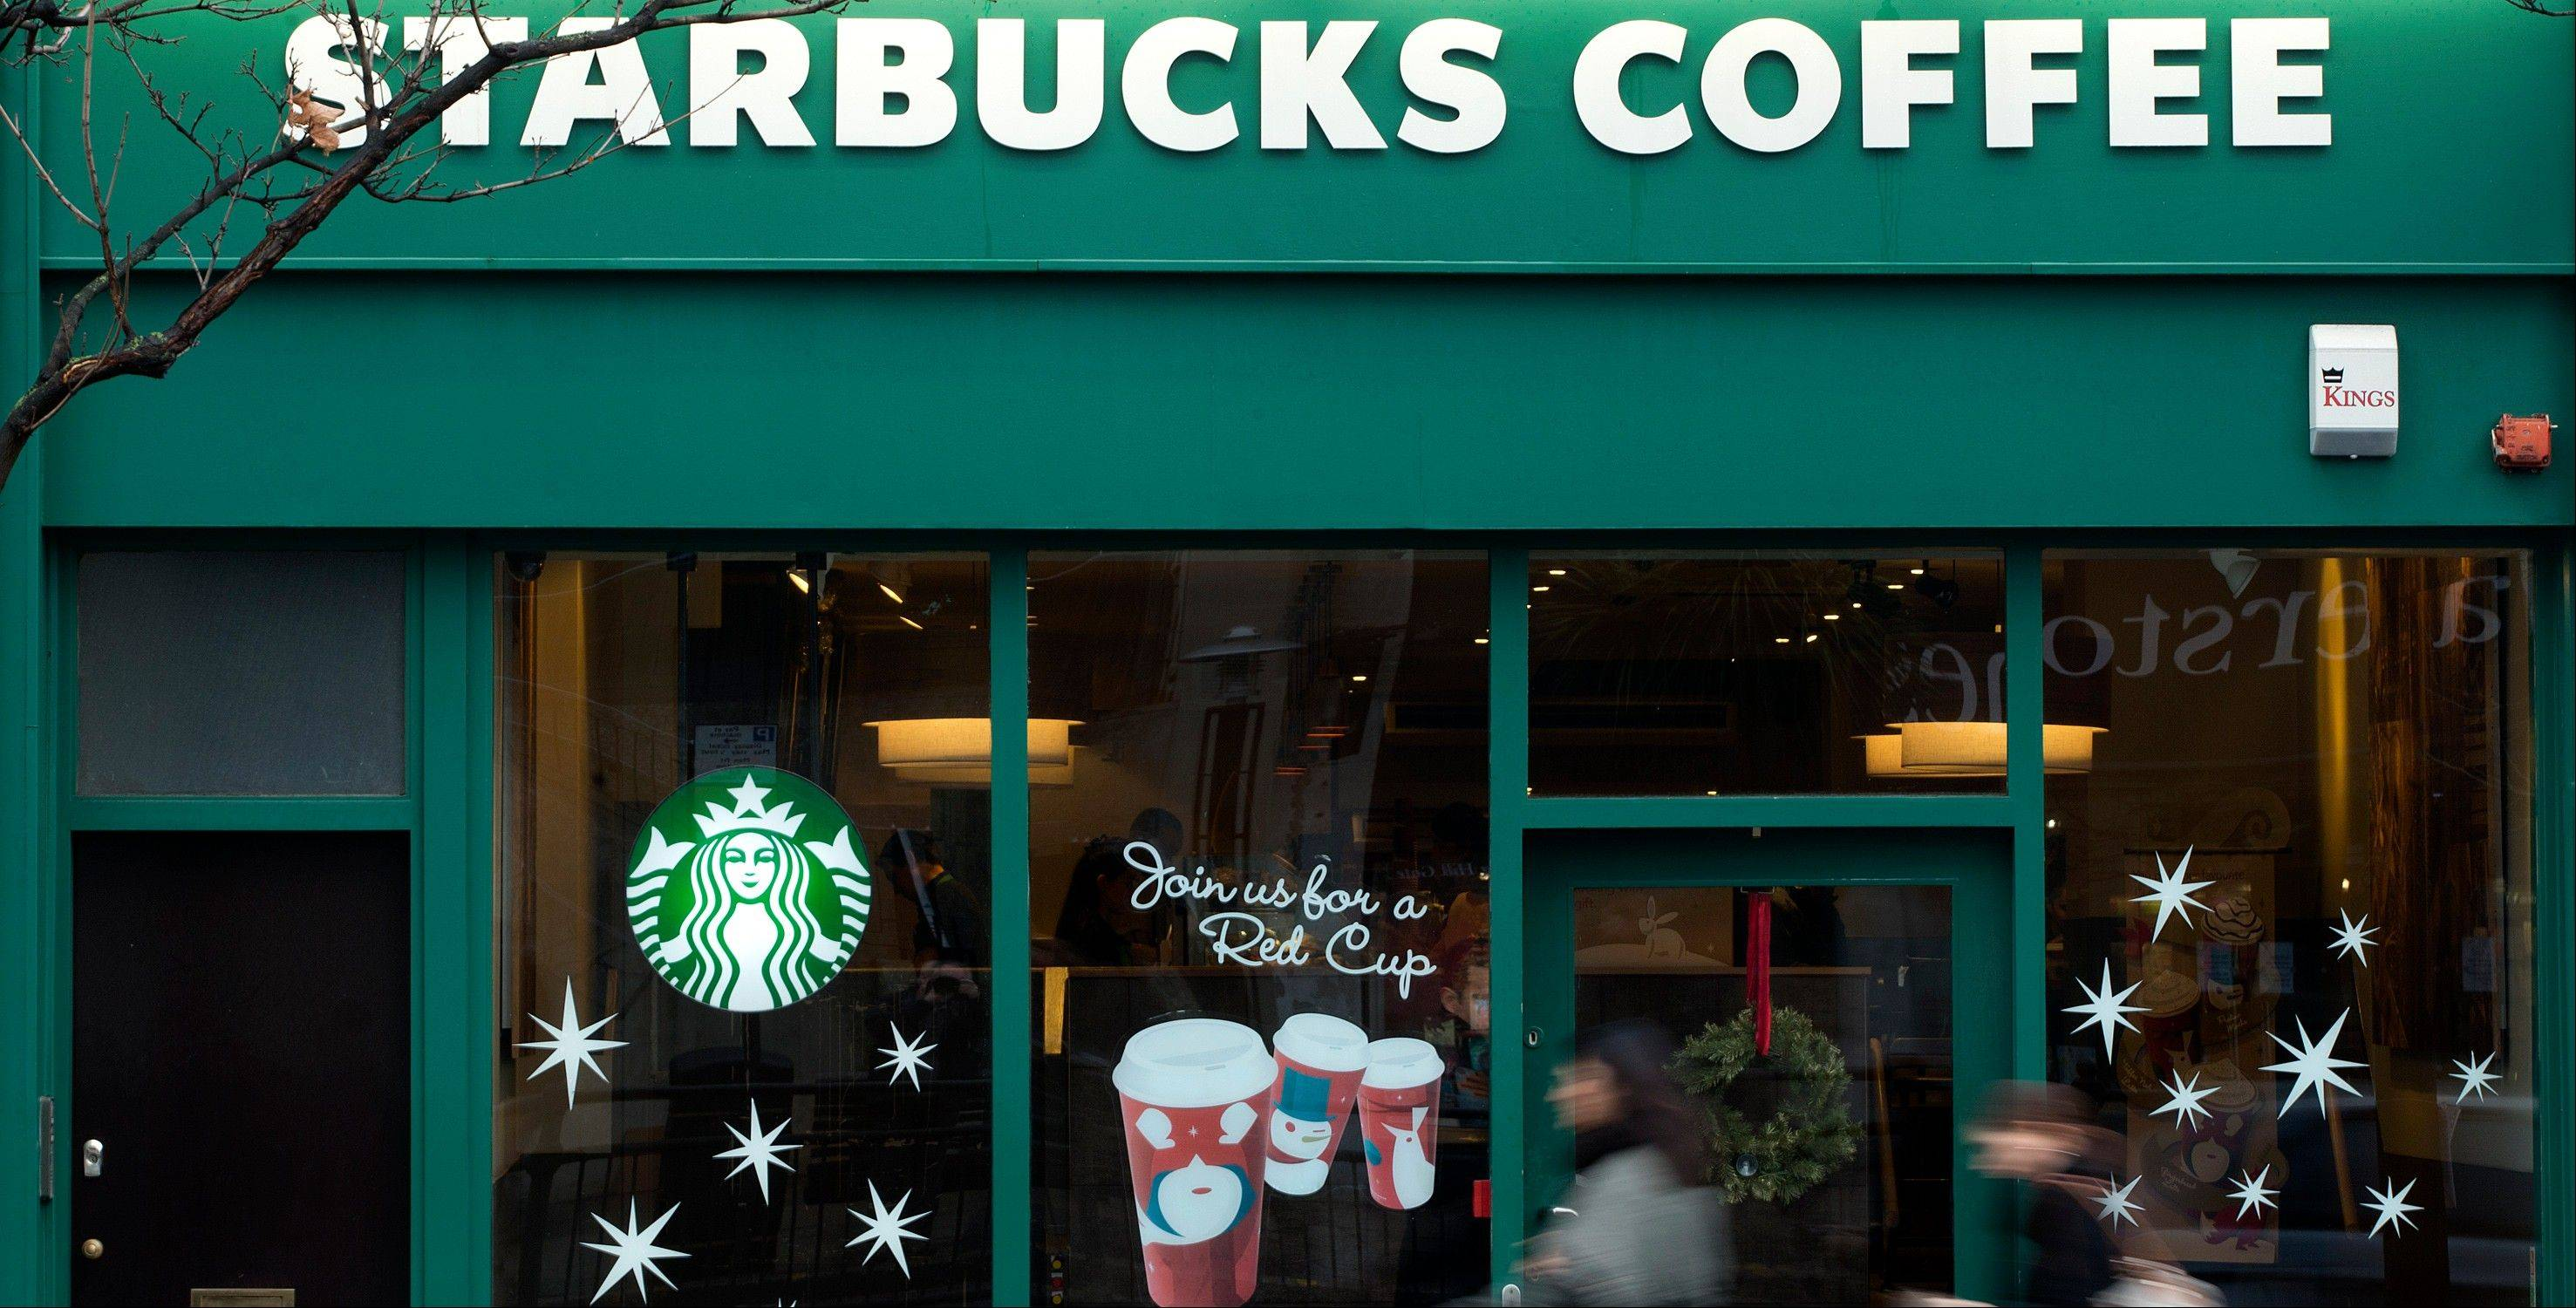 Another Starbucks may soon pop up around the corner, with the world's biggest coffee company planning to add at least 1,500 cafes in the U.S. over the next five years. The plan would boost the number of Starbucks cafes in the country by about 13 percent. It is set to be announced at the company's investor day in New York on Wednesday.